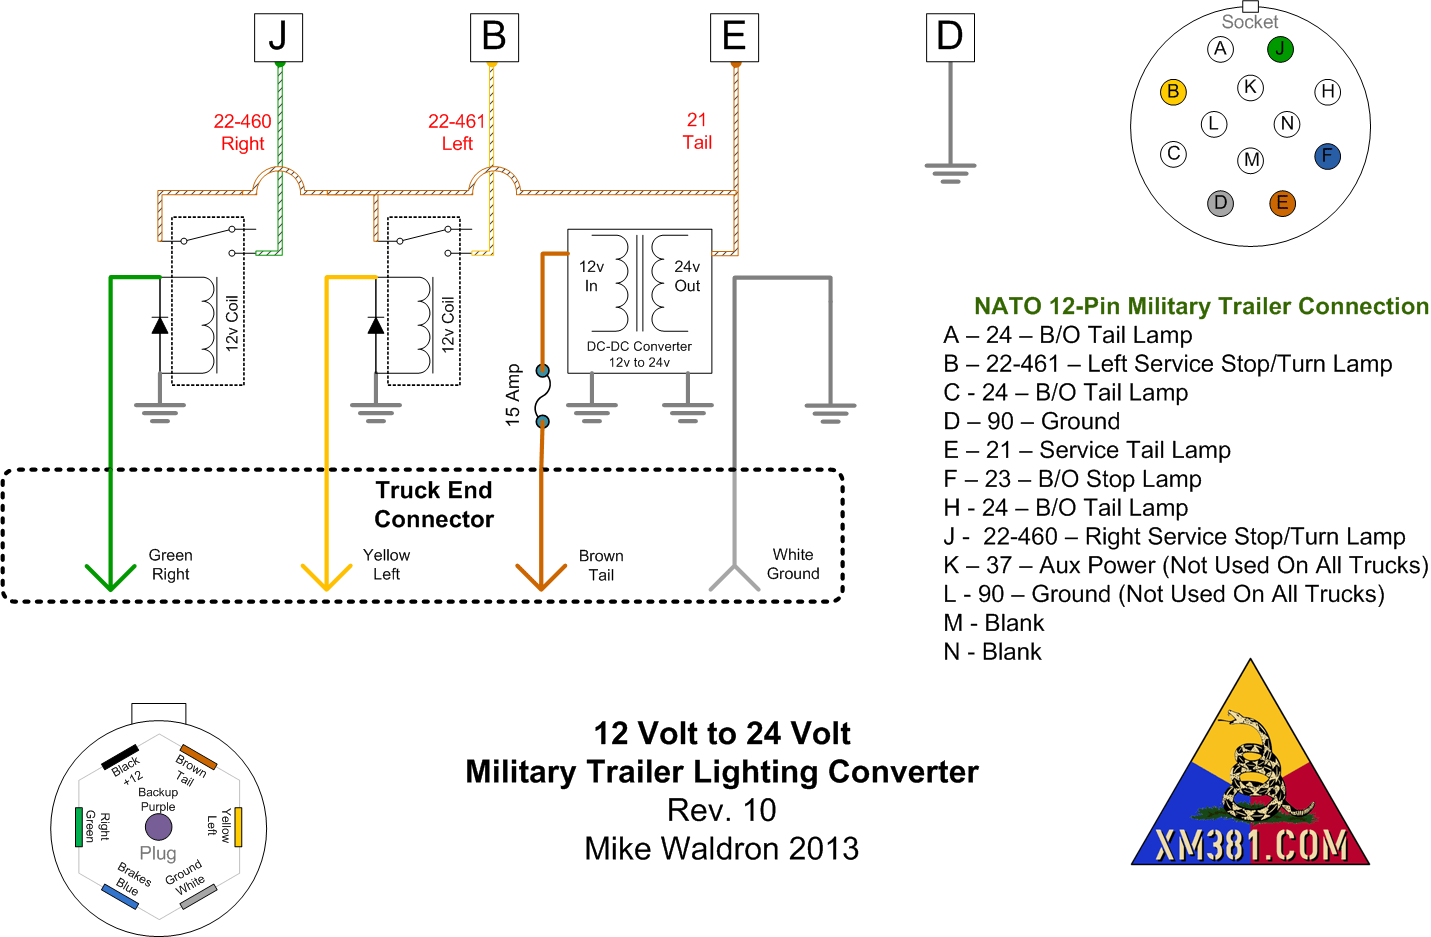 12v trailer wiring diagram 2000 gmc yukon radio xm381 12 volt civllian truck to 24 military